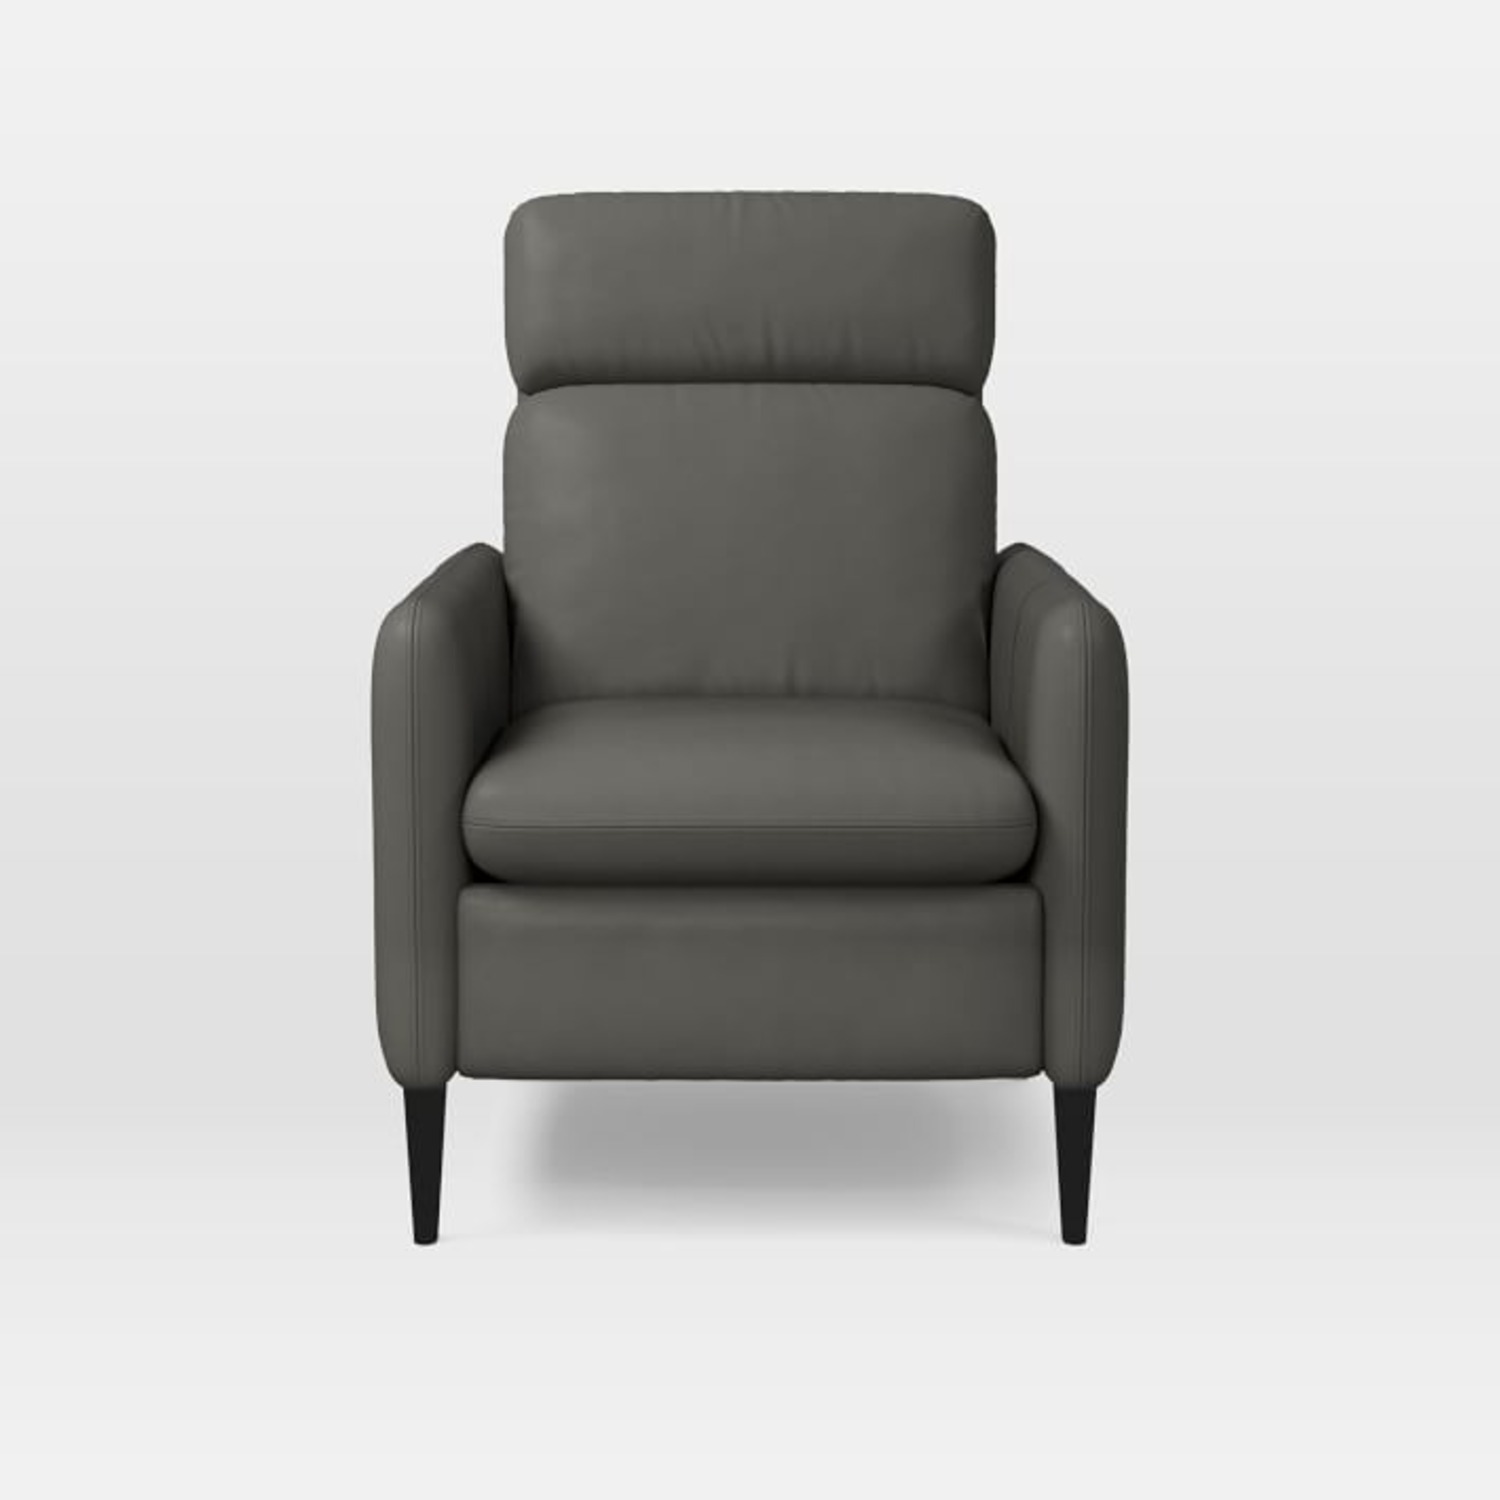 West Elm Lewis Leather Recliner - image-1